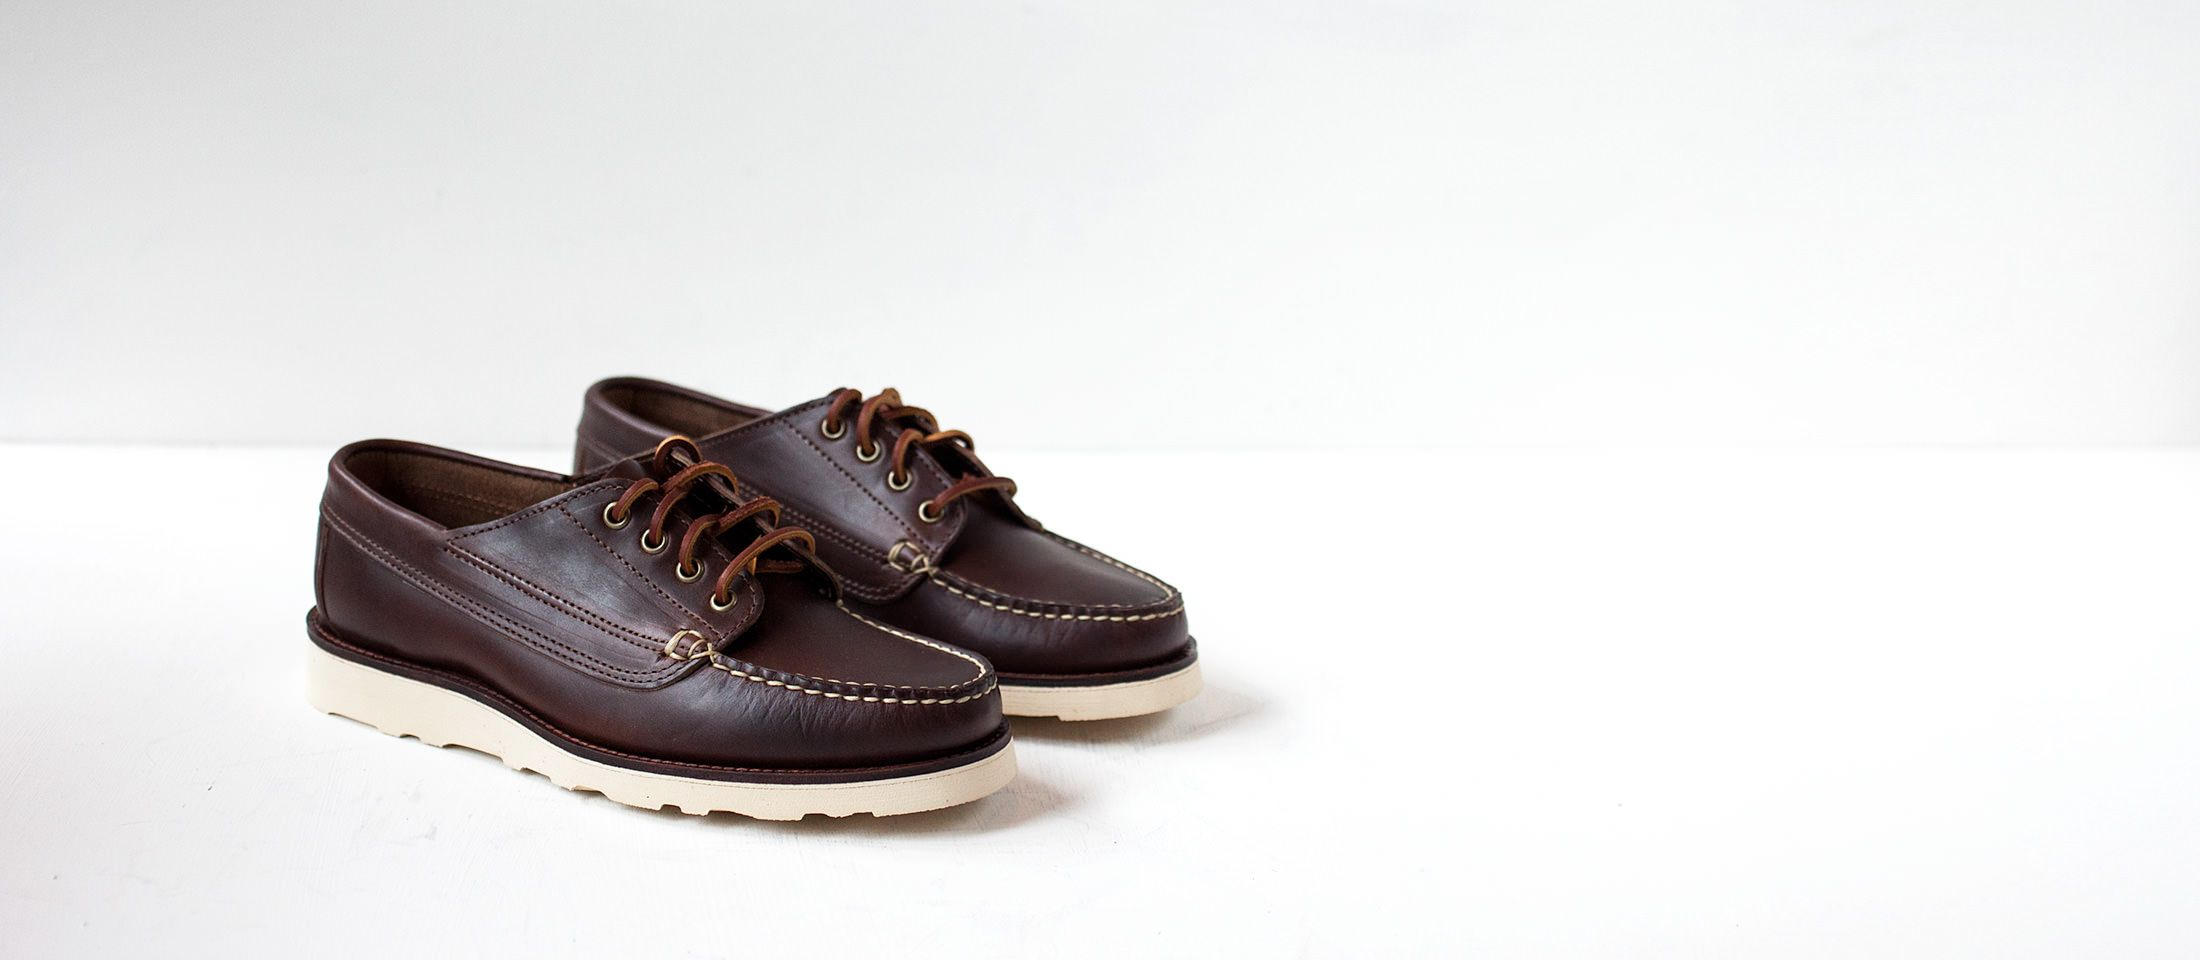 Oak Street Bootmakers - Vibram Sole Trail Oxford - French Garment Cleaners Co.